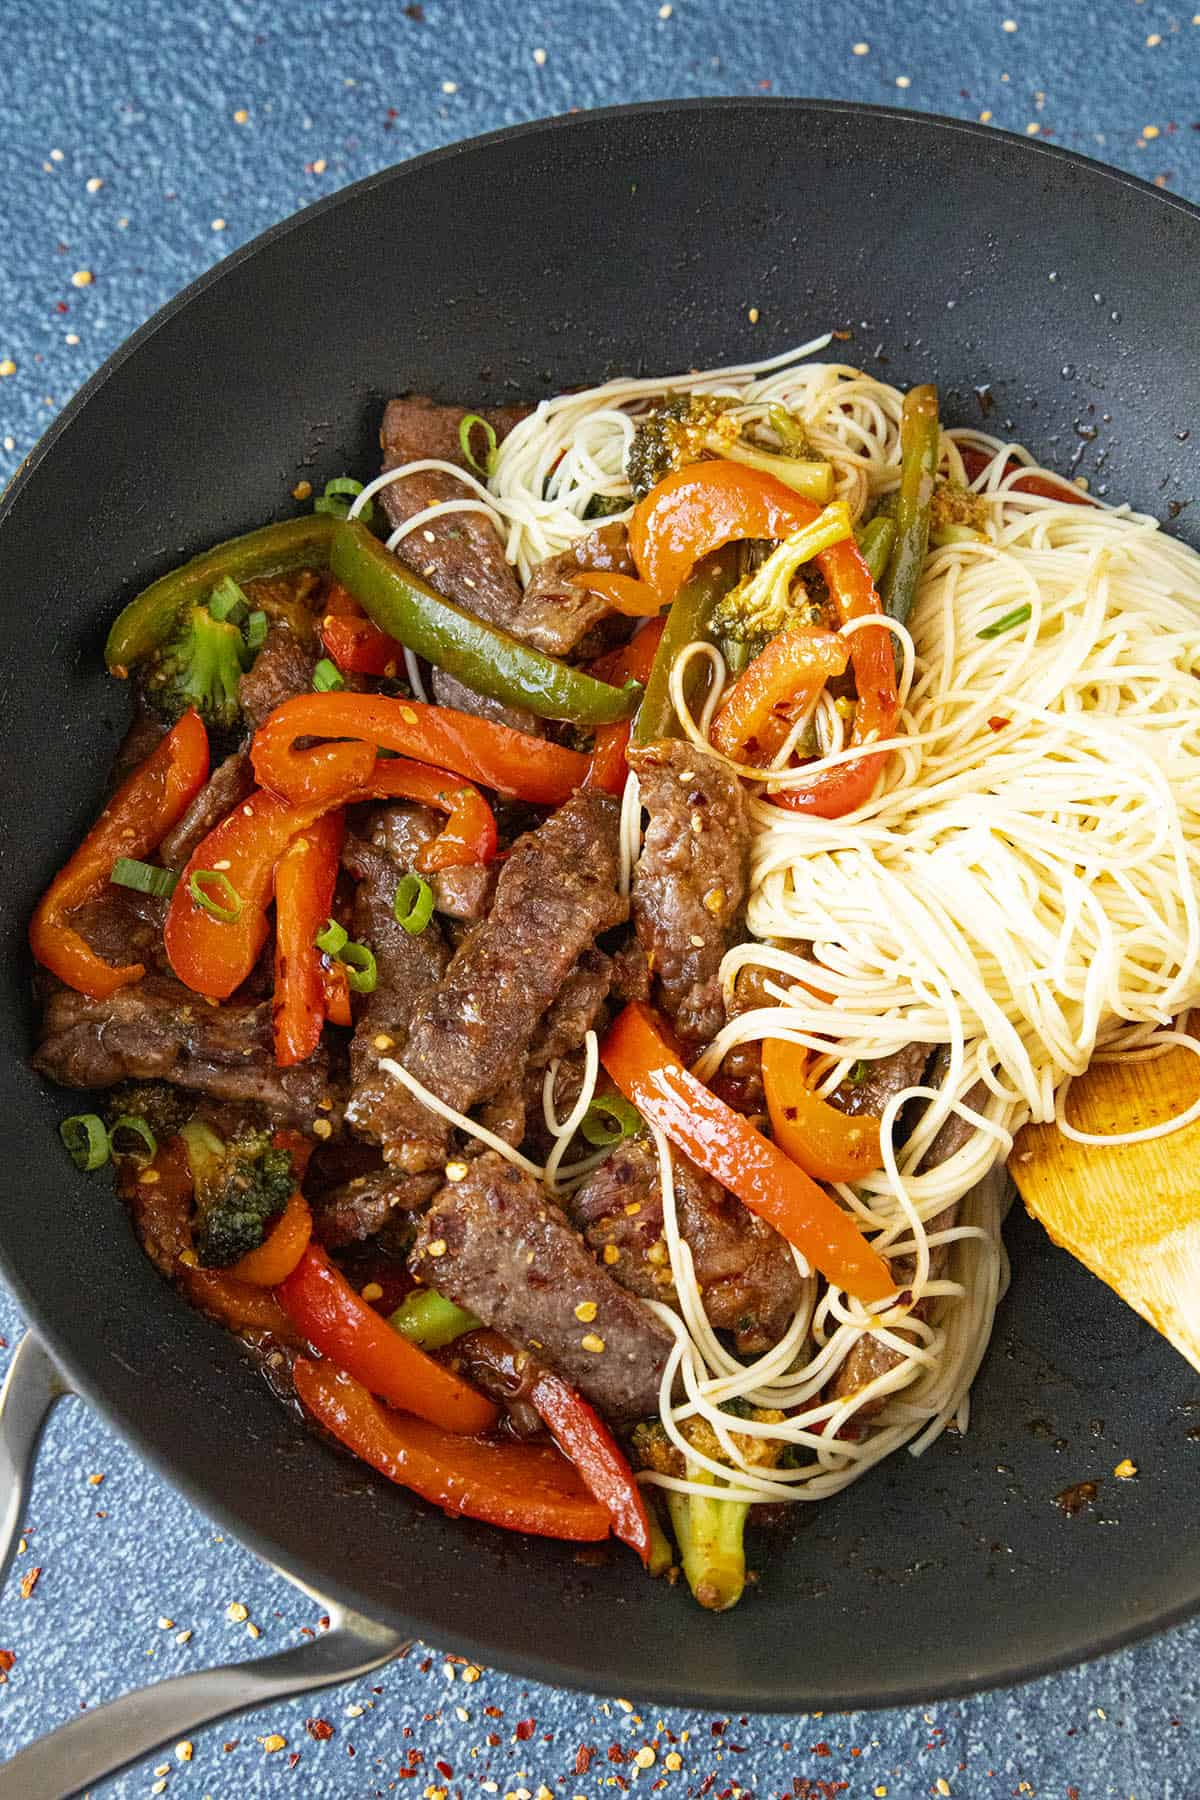 Stirring noodles into the Beef Stir Fry